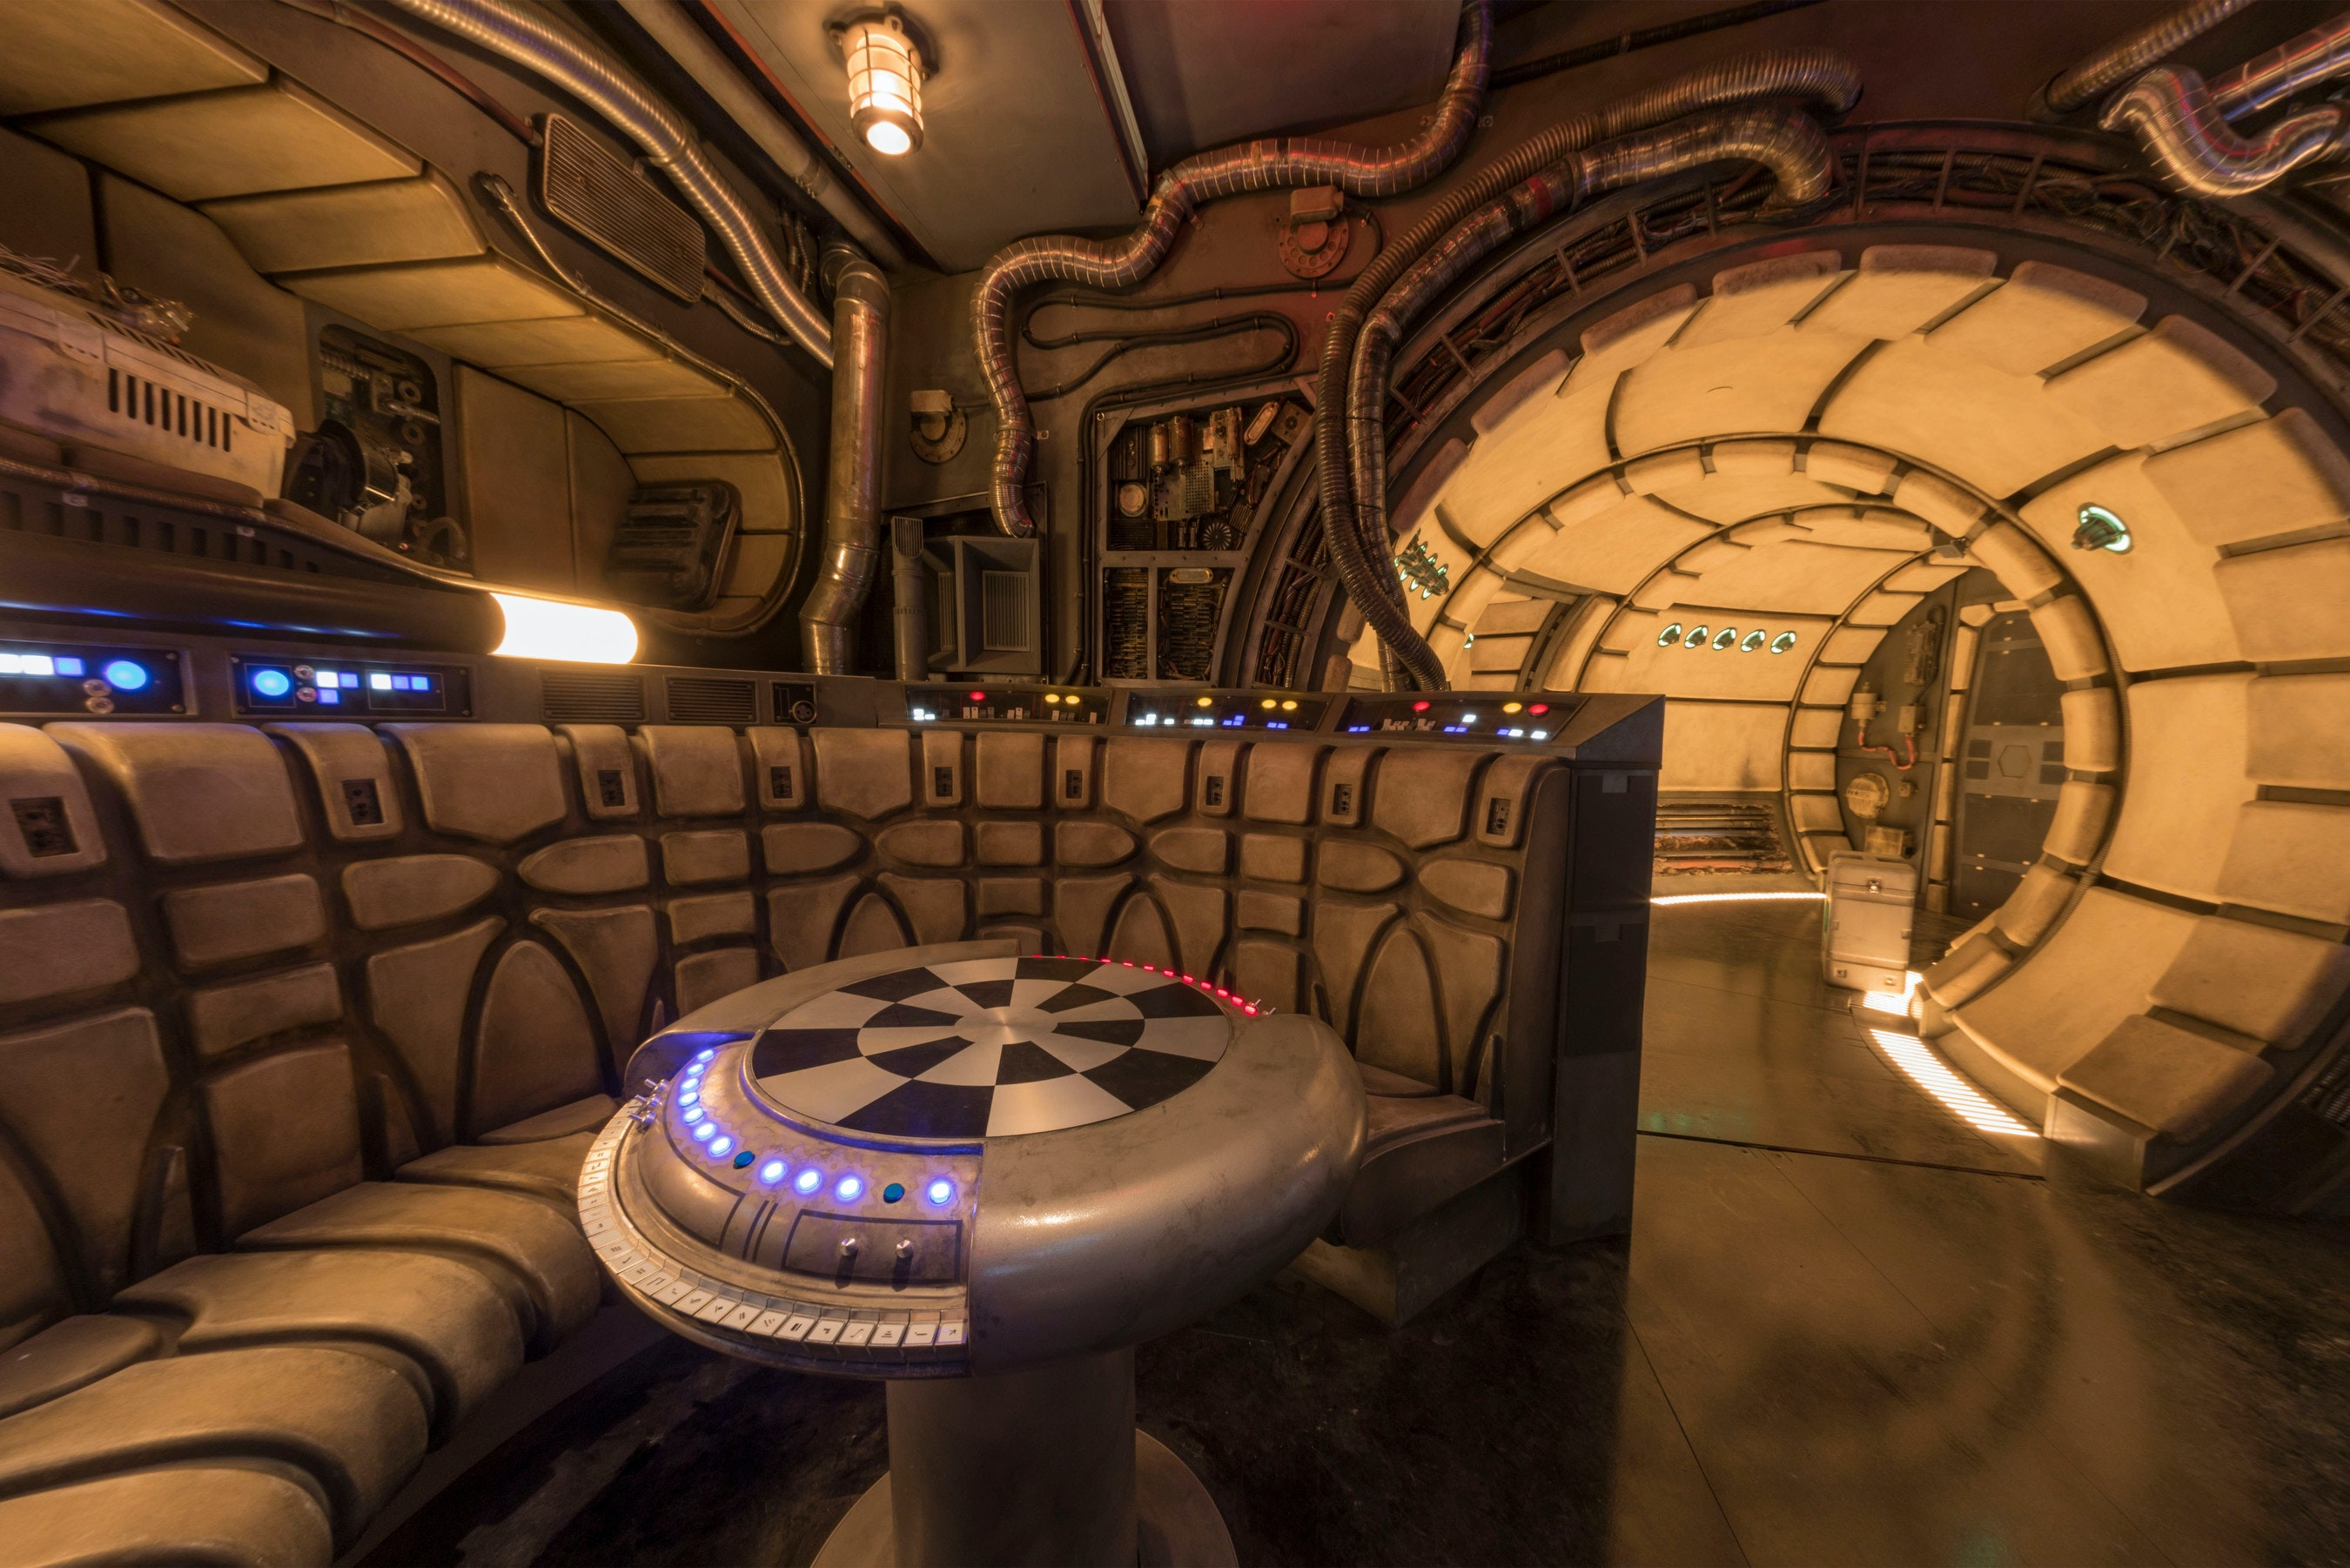 Before entering the cockpit of the Millennium Falcon: Smugglers Run attraction, you'll pass through the chess room of the famous space ship.